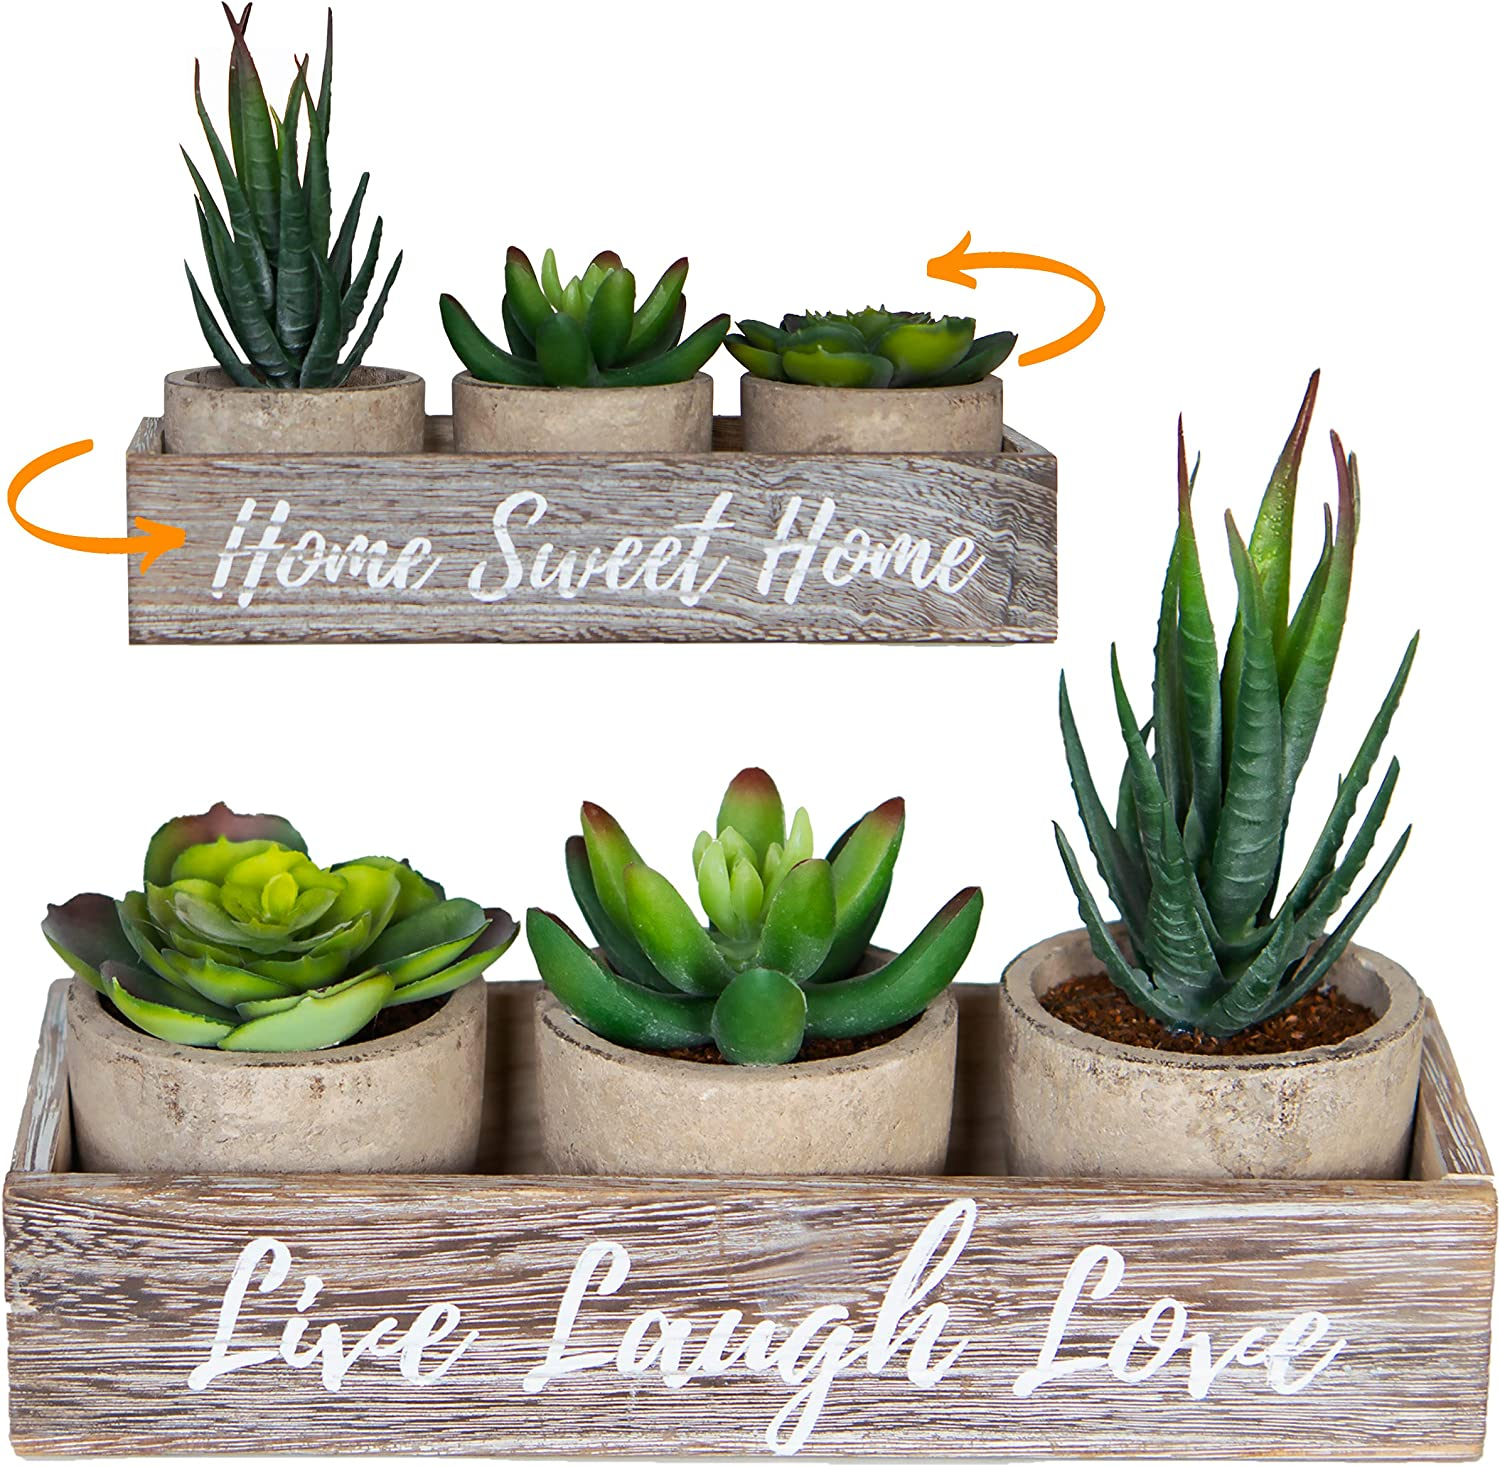 3 Artificial Succulent Plants with Pots with Rustic Planter Box – Home Sweet Home & Live Laugh Love | Realistic Greenery Mini Faux Plant Arrangements for Home Decor Office Table Bathroom Kitchen Dorm